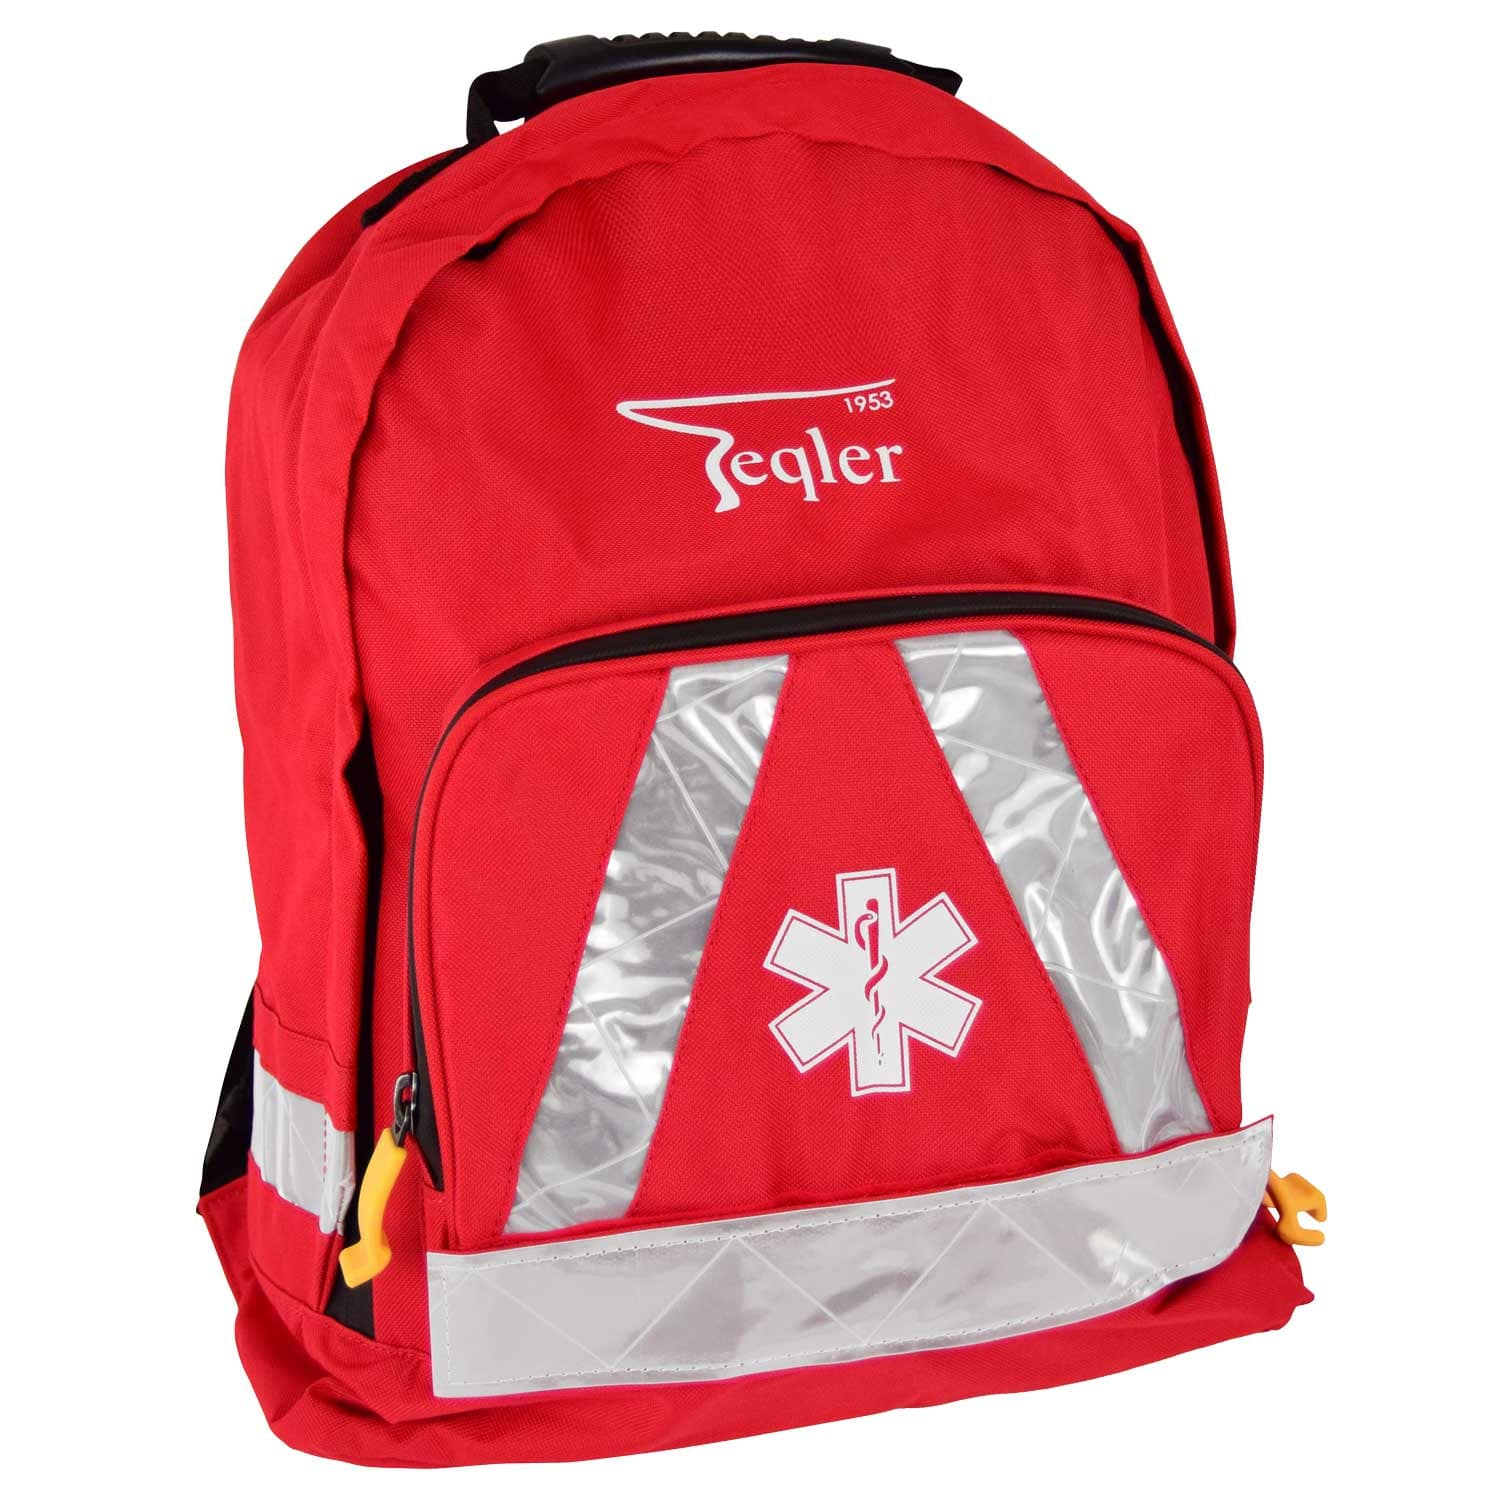 https://static.praxisdienst.com/out/pictures/generated/product/1/1500_1500_100/138144_teqler_notfallrucksack_aalst_front.jpg